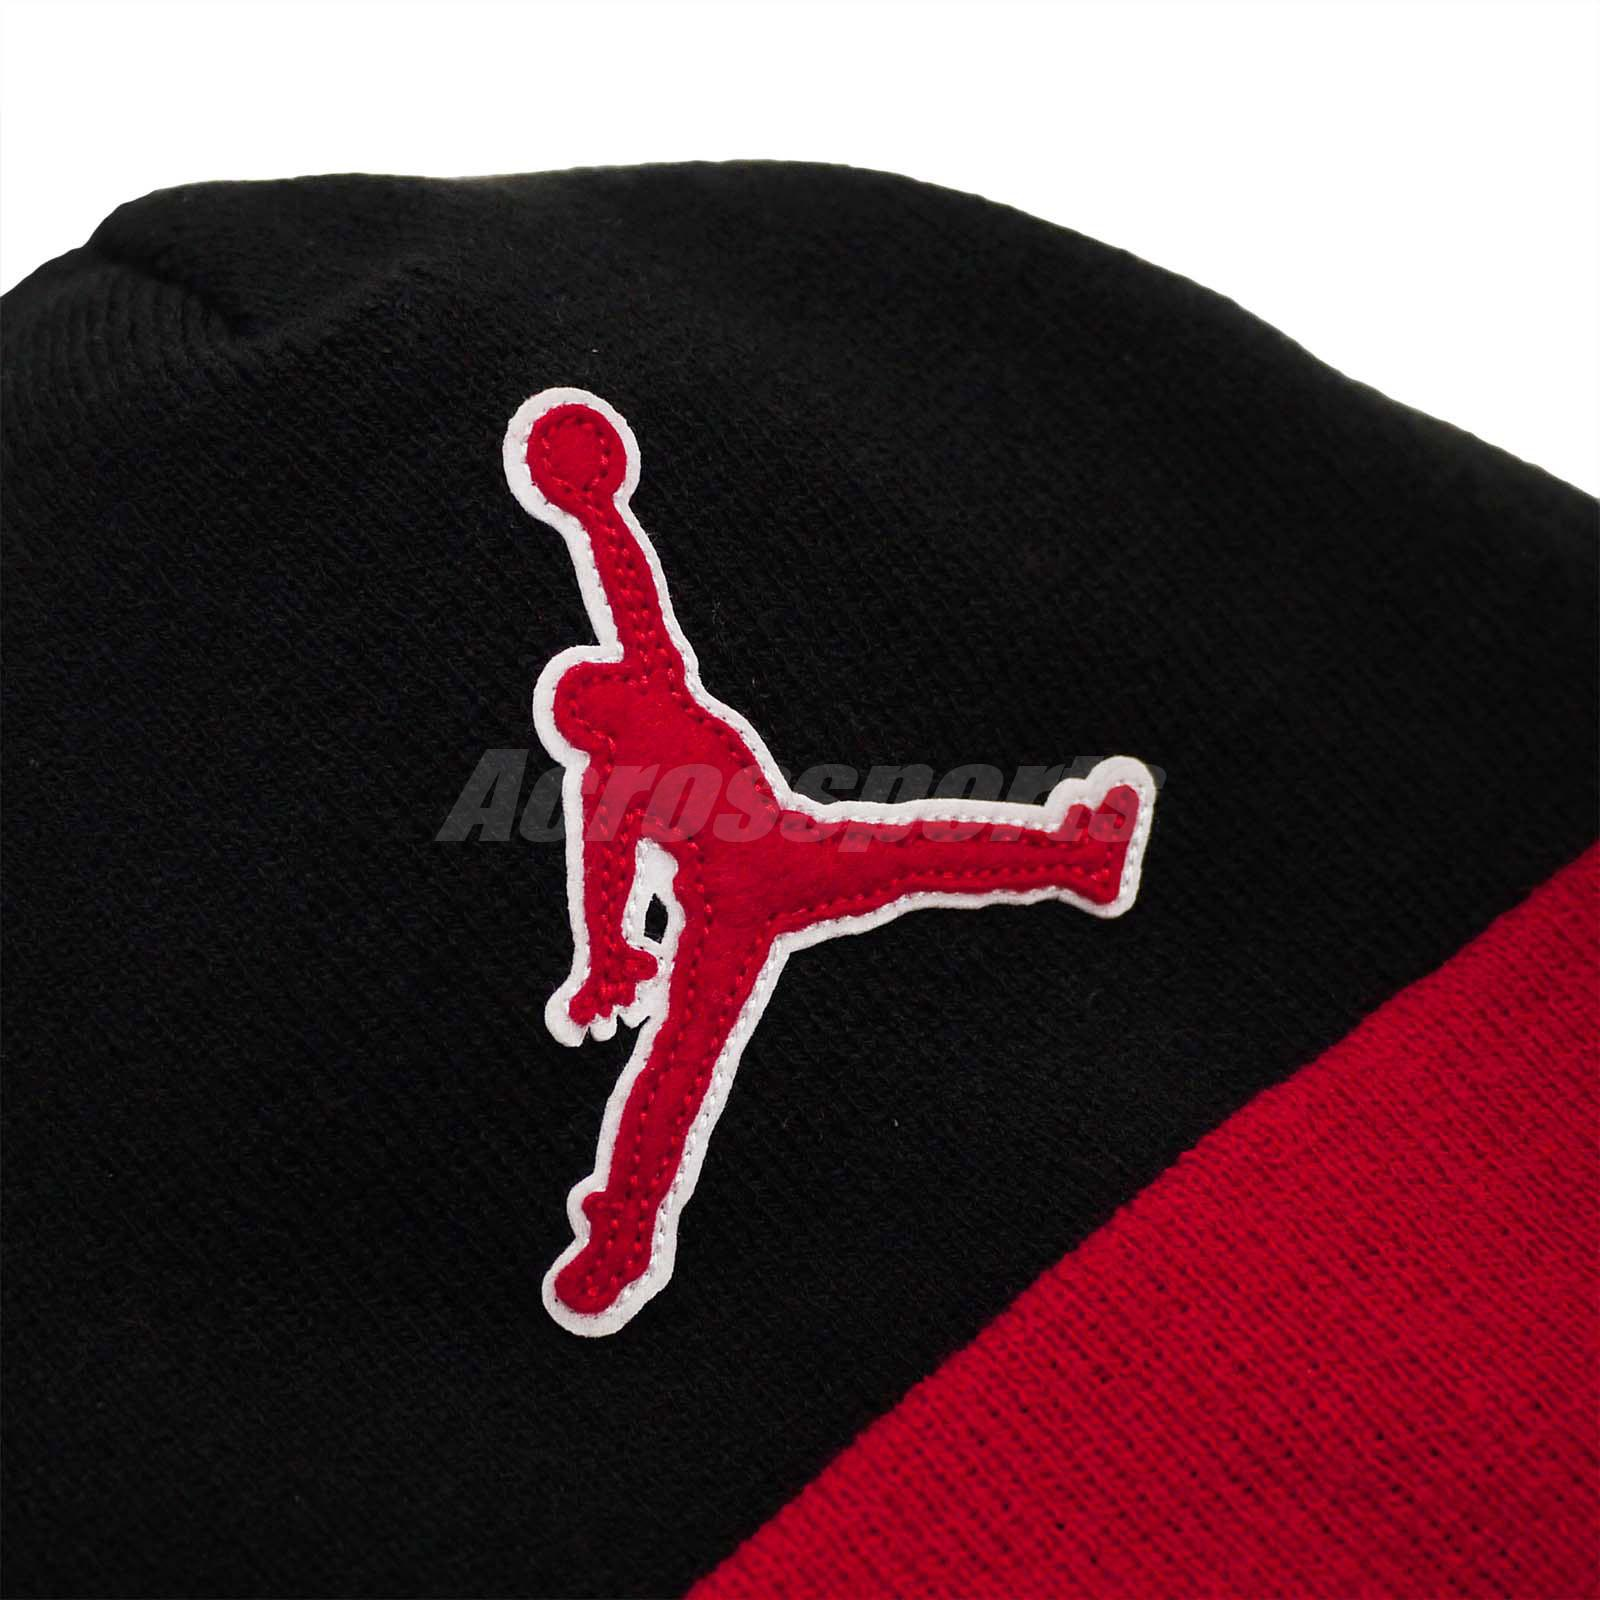 4cbbeb5989cf Nike Air Jordan Beanie Graphic Knit Winter Warm Hat Jumpman Sport ...